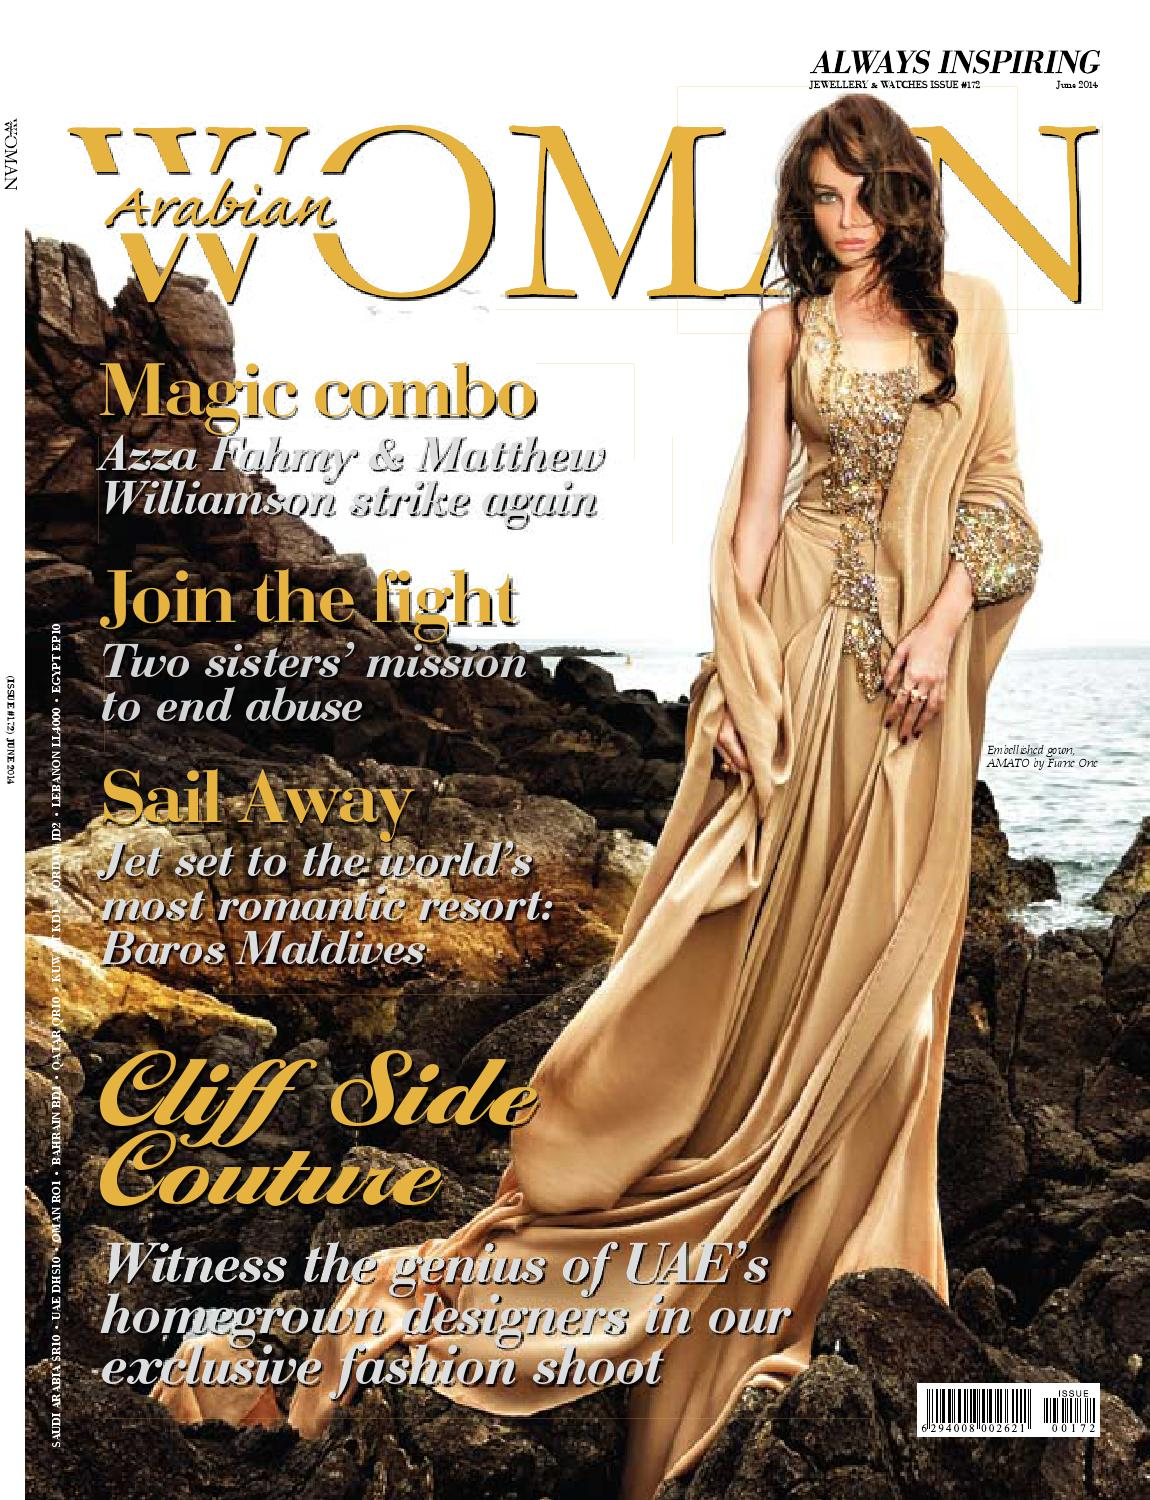 Arabian Woman June 2014 Issue